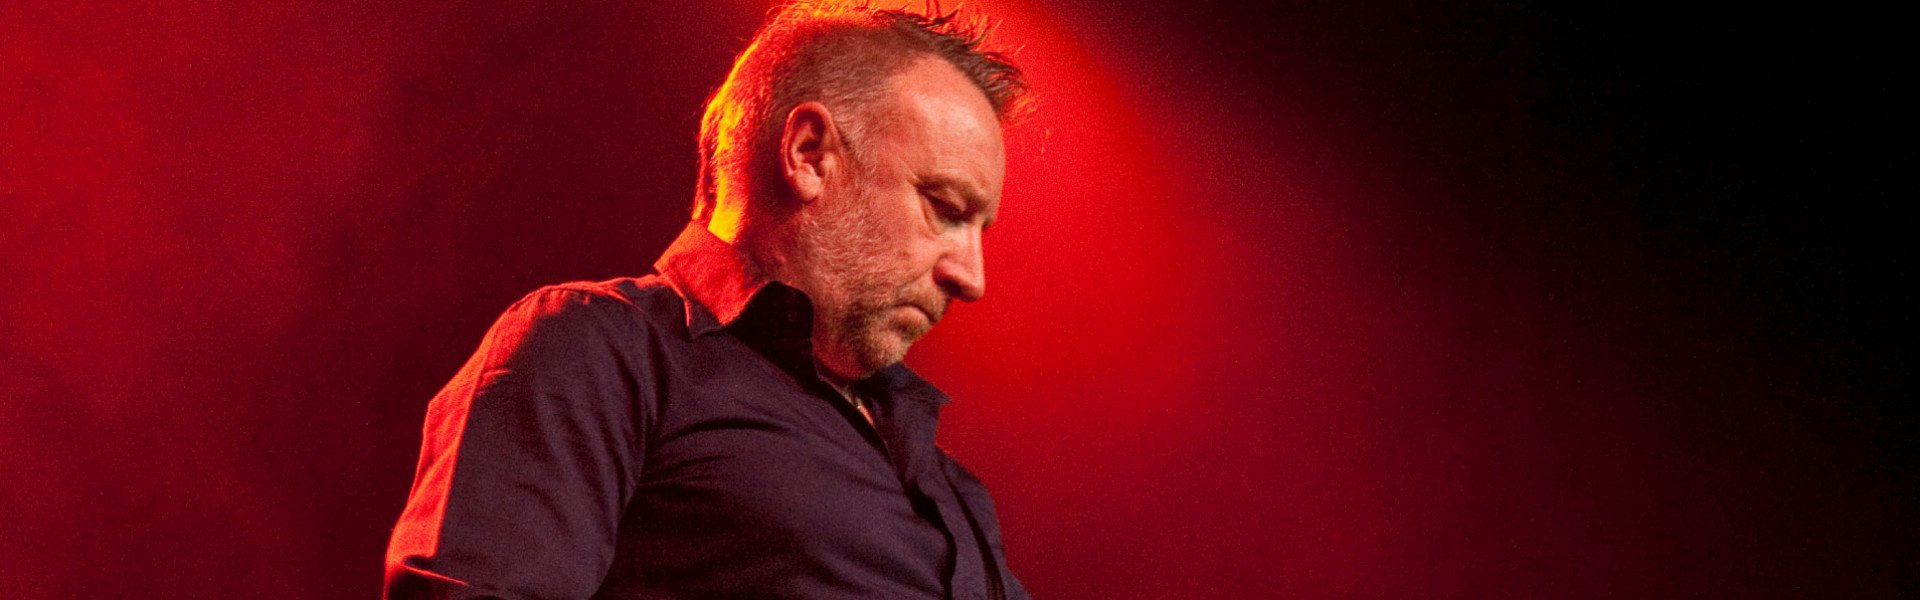 PSM Caz Festivali: Peter Hook & The Light – 'Joy Division: A Celebration' / She Past Away